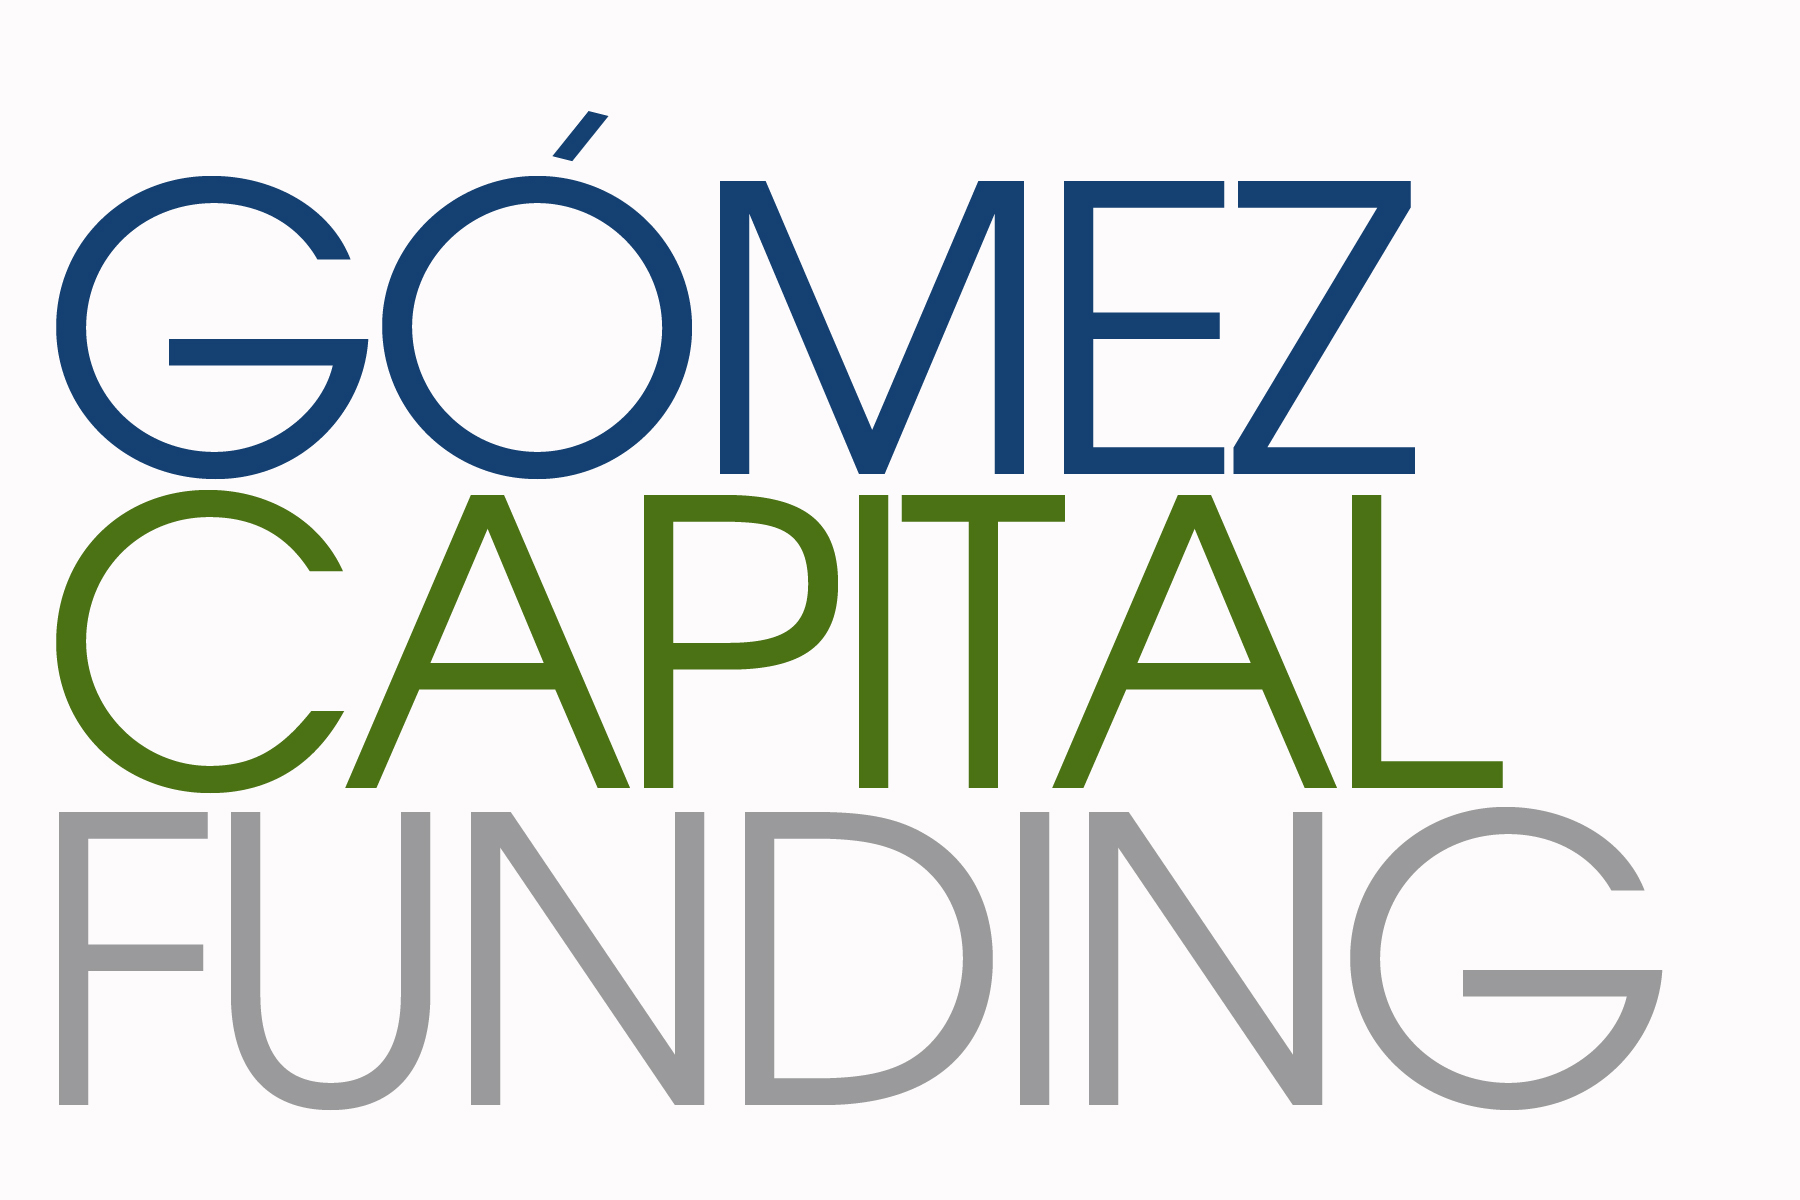 Gomez Capital Funding